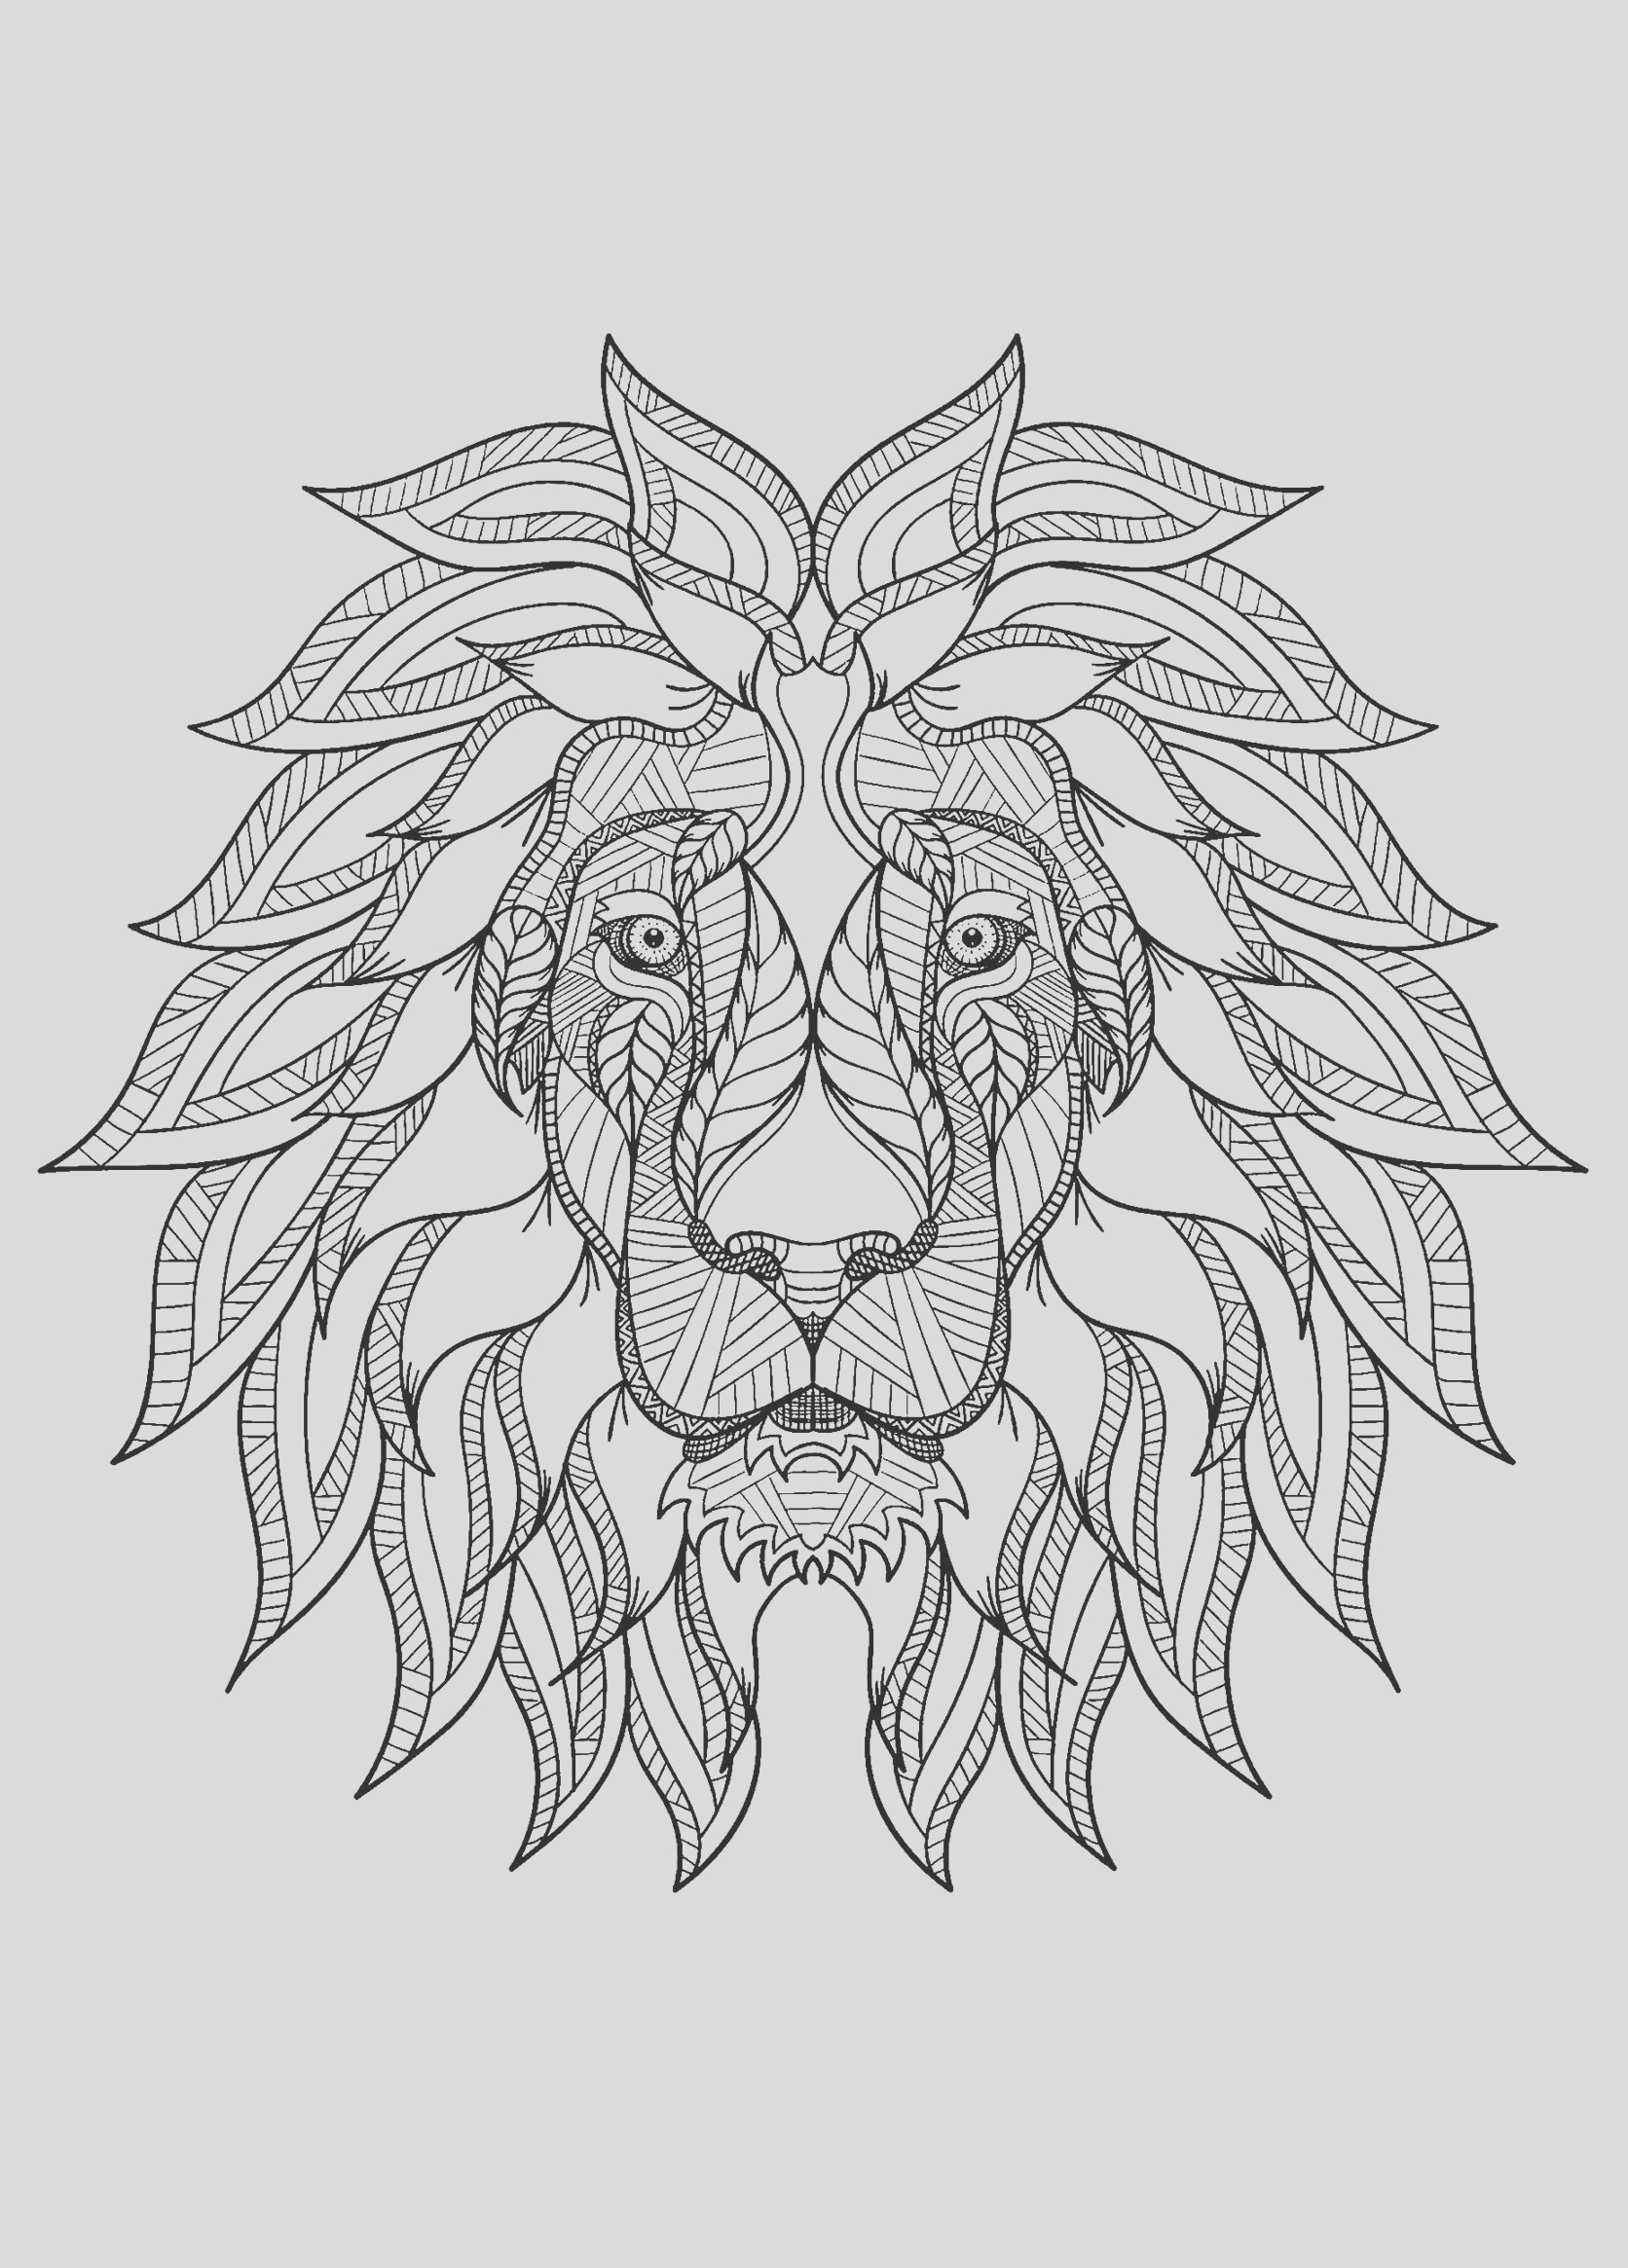 image=lion coloring pages for children lion 1